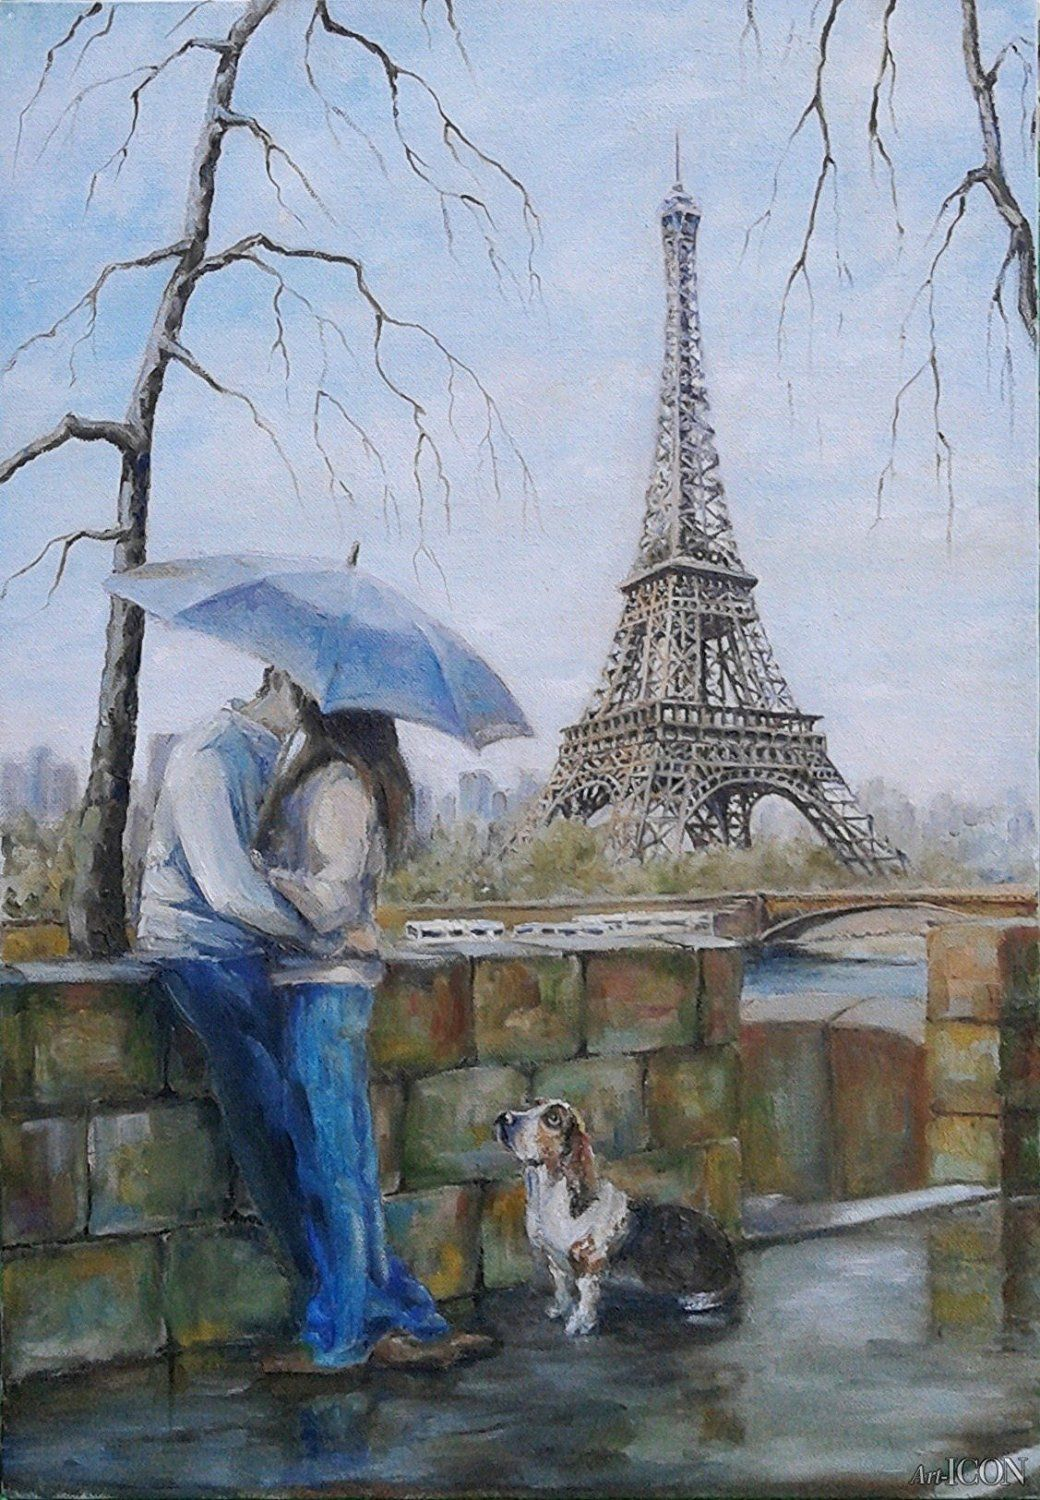 Couple Lovers DIY Paint By Number Kit Acrylic Oil Painting Canvas Art Home Decor